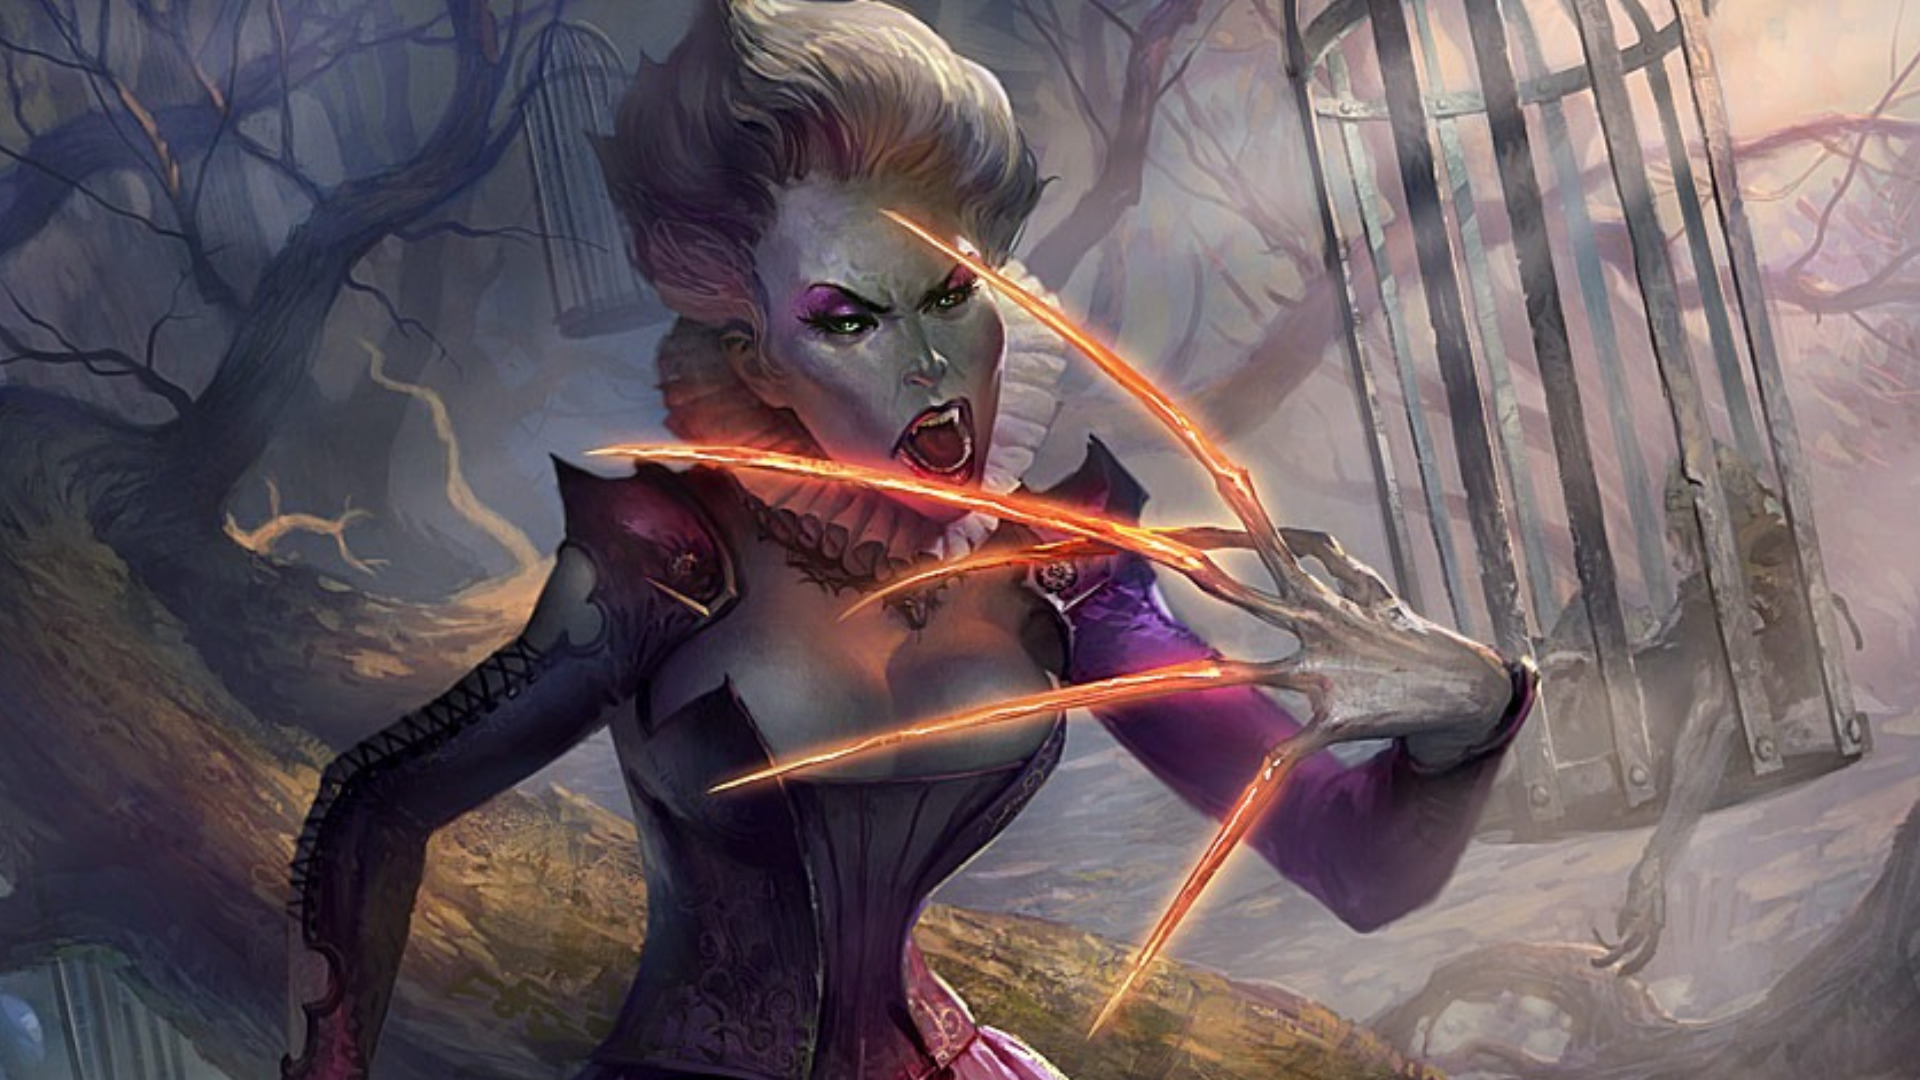 Magic the gathering hd backgrounds pictures images - Magic wallpaper ...